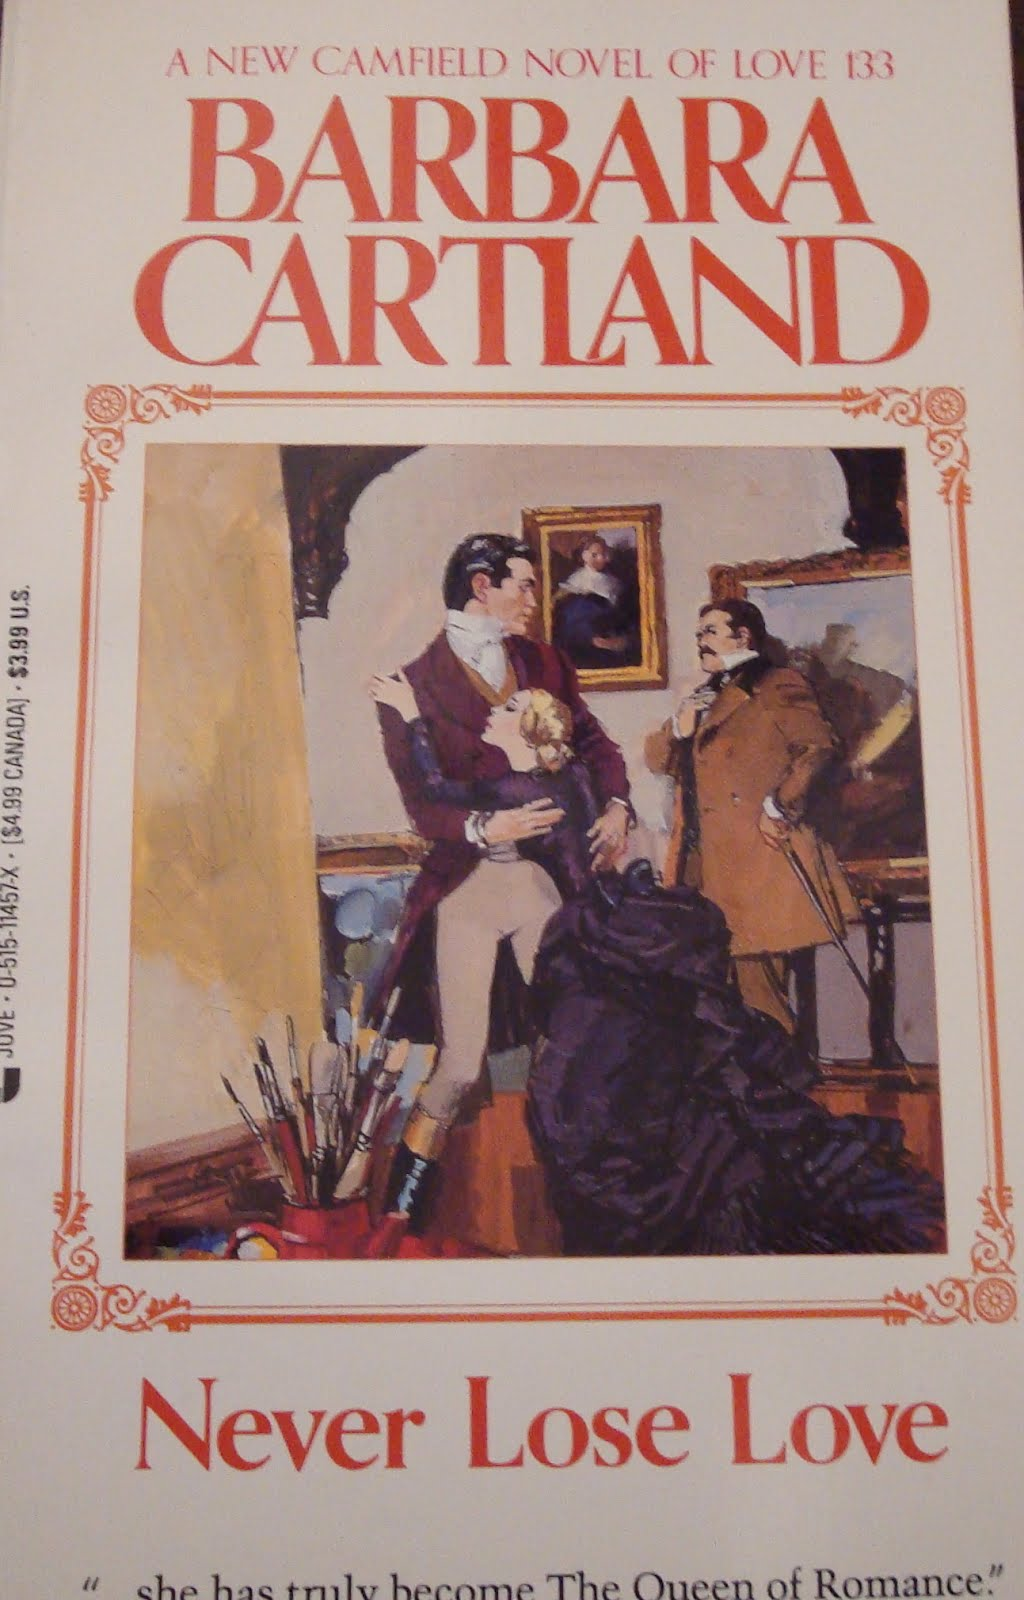 love loss literature Le grand meaulnes — translated as the lost domain or the wanderer — is a magical fable of adolesence, erotic awakening and idealised desire  presided over by one of literature's most .